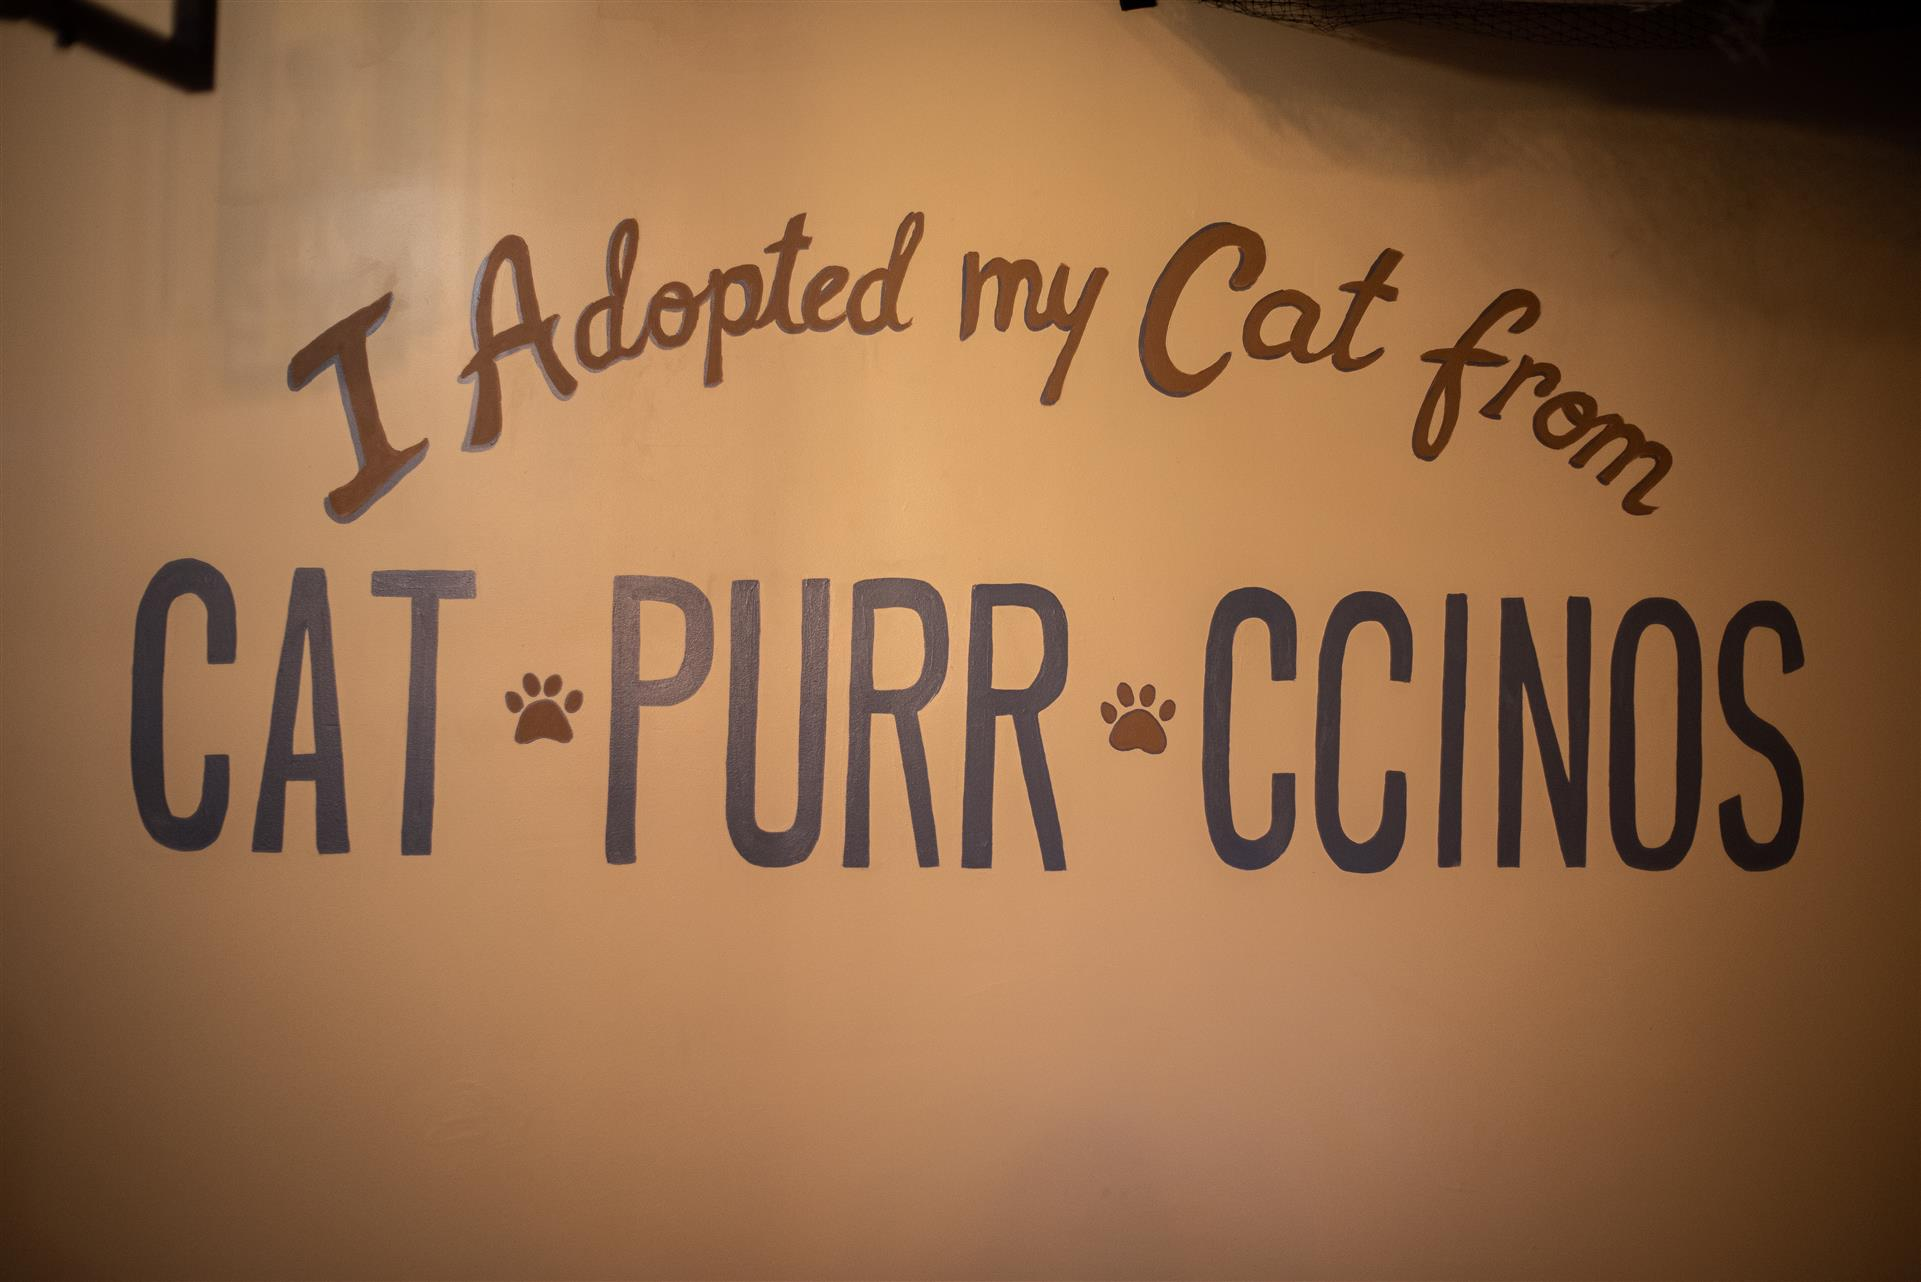 Wall painted 'I adopted my cats from Catpurrccinos.'